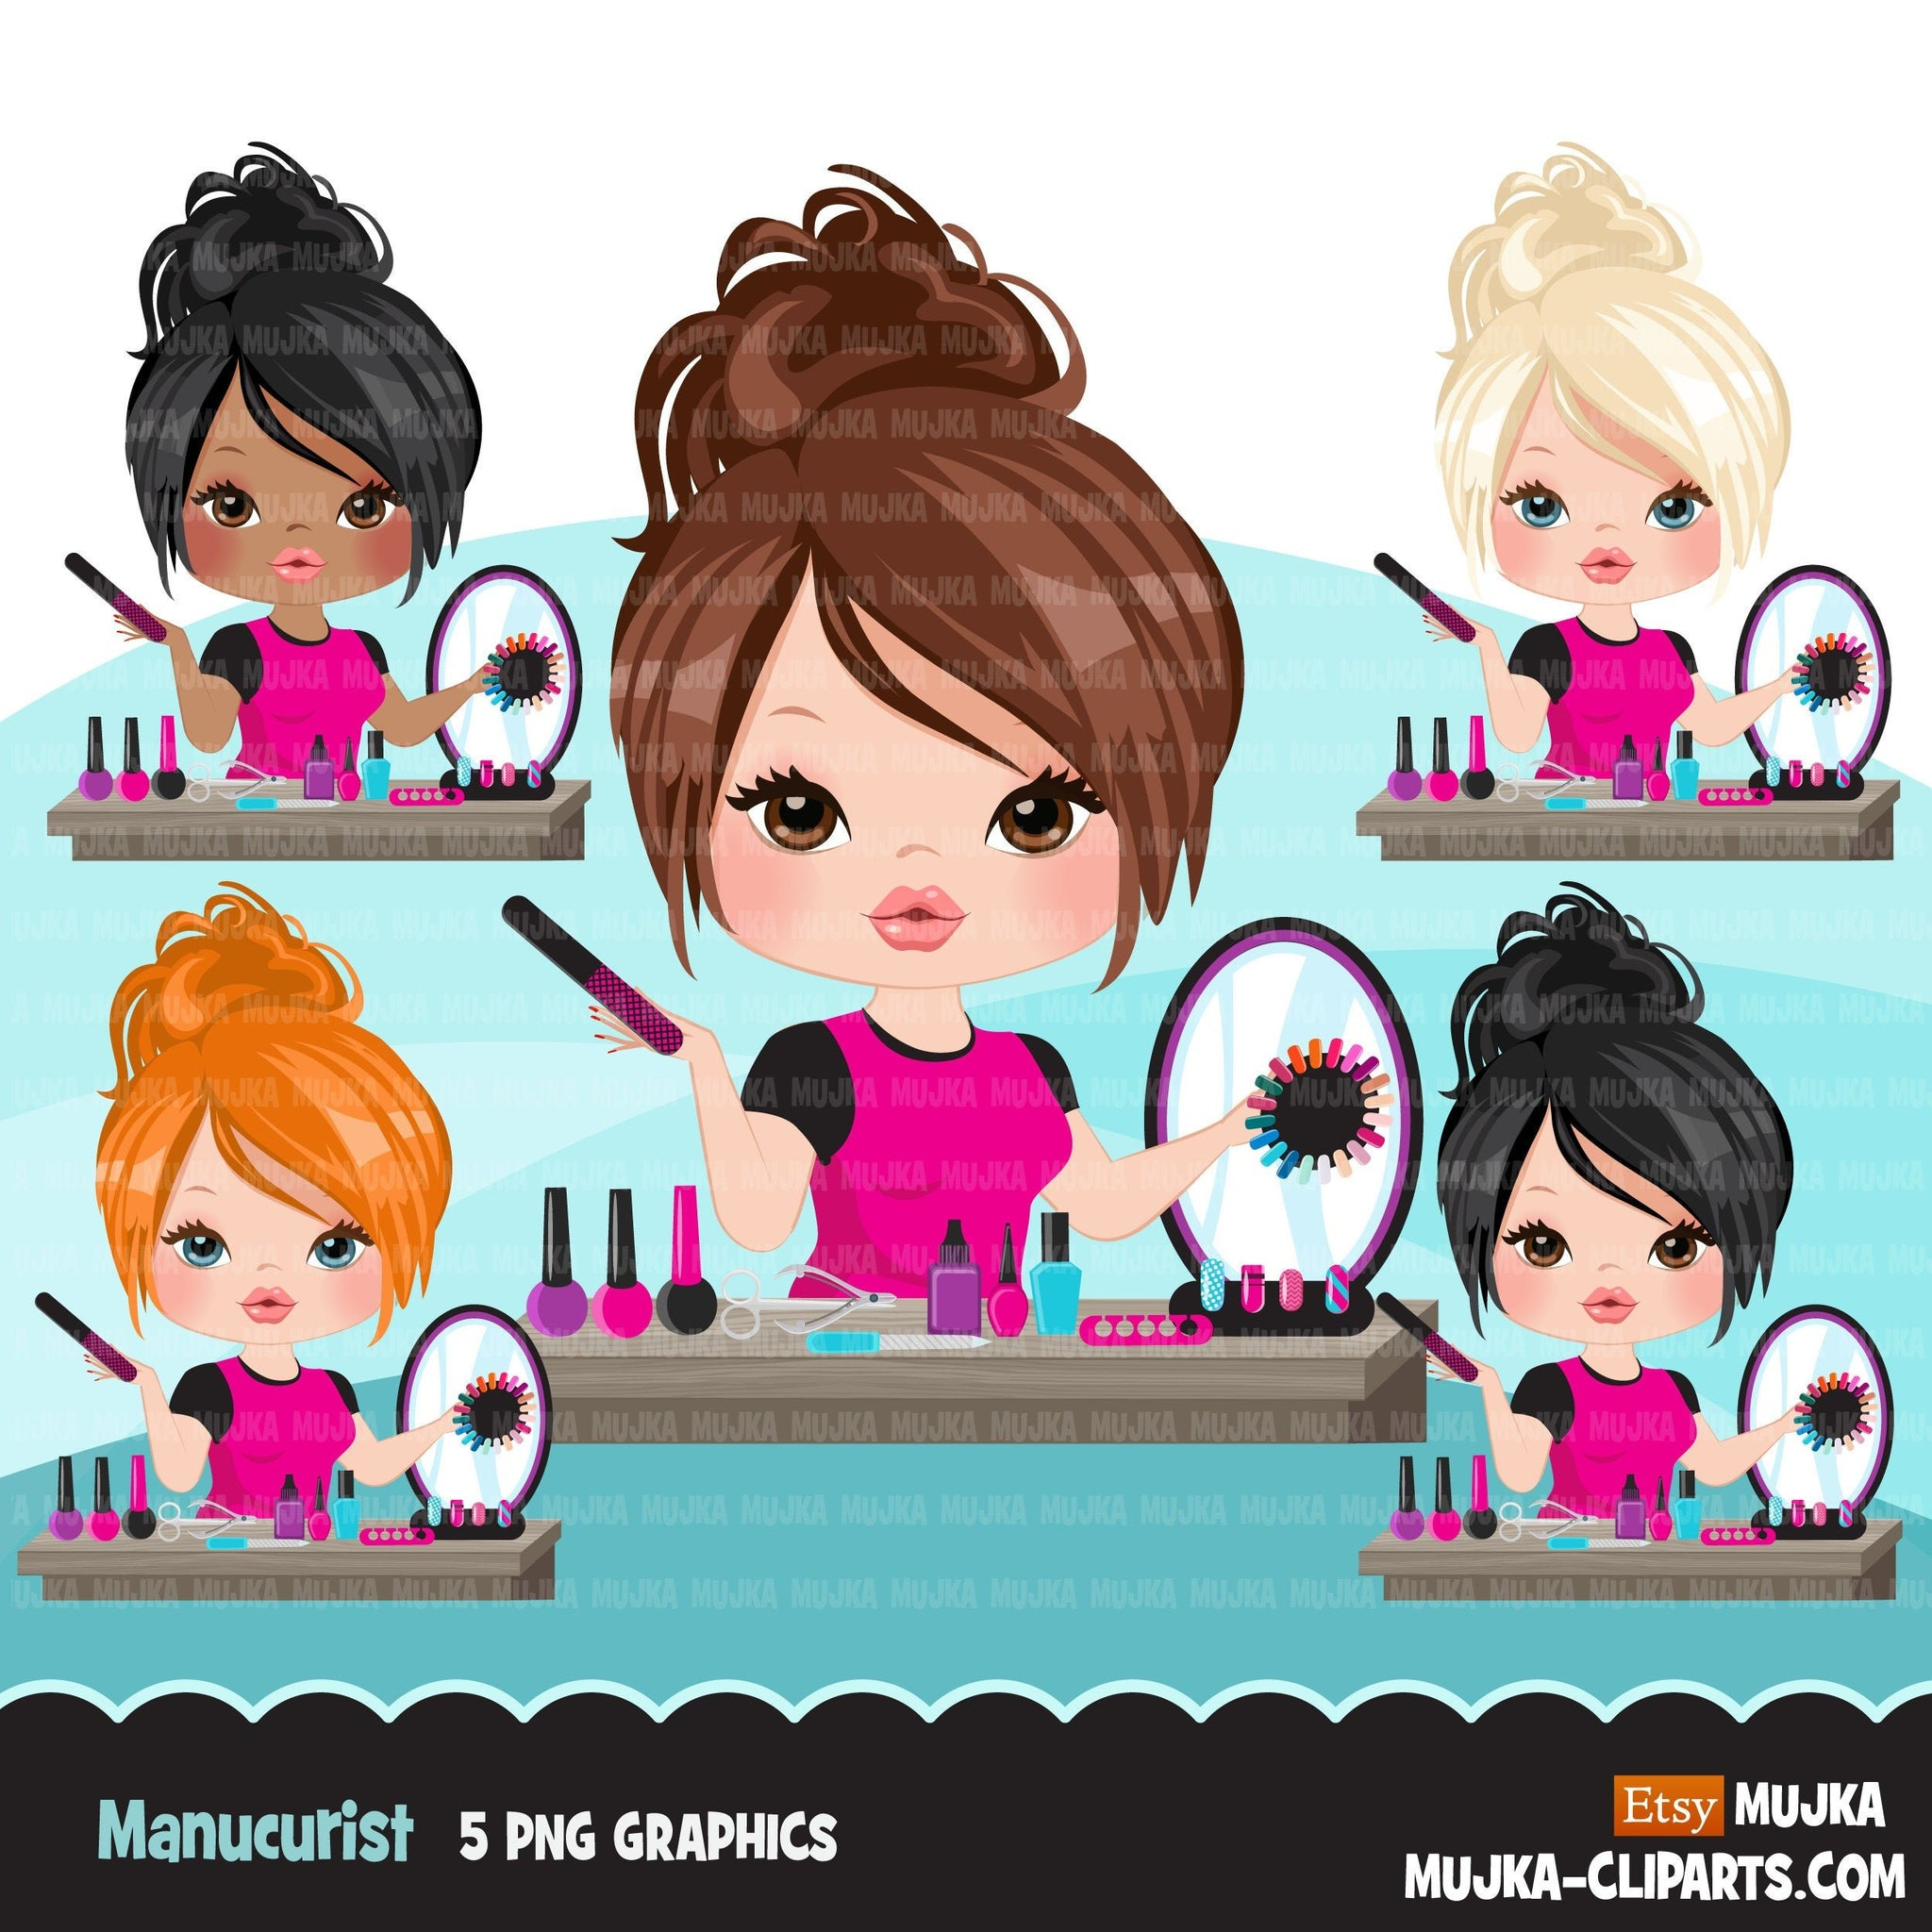 Woman manicurist avatar clipart with nail art graphics girl, print and cut T-Shirt Designs, nail technician clip art